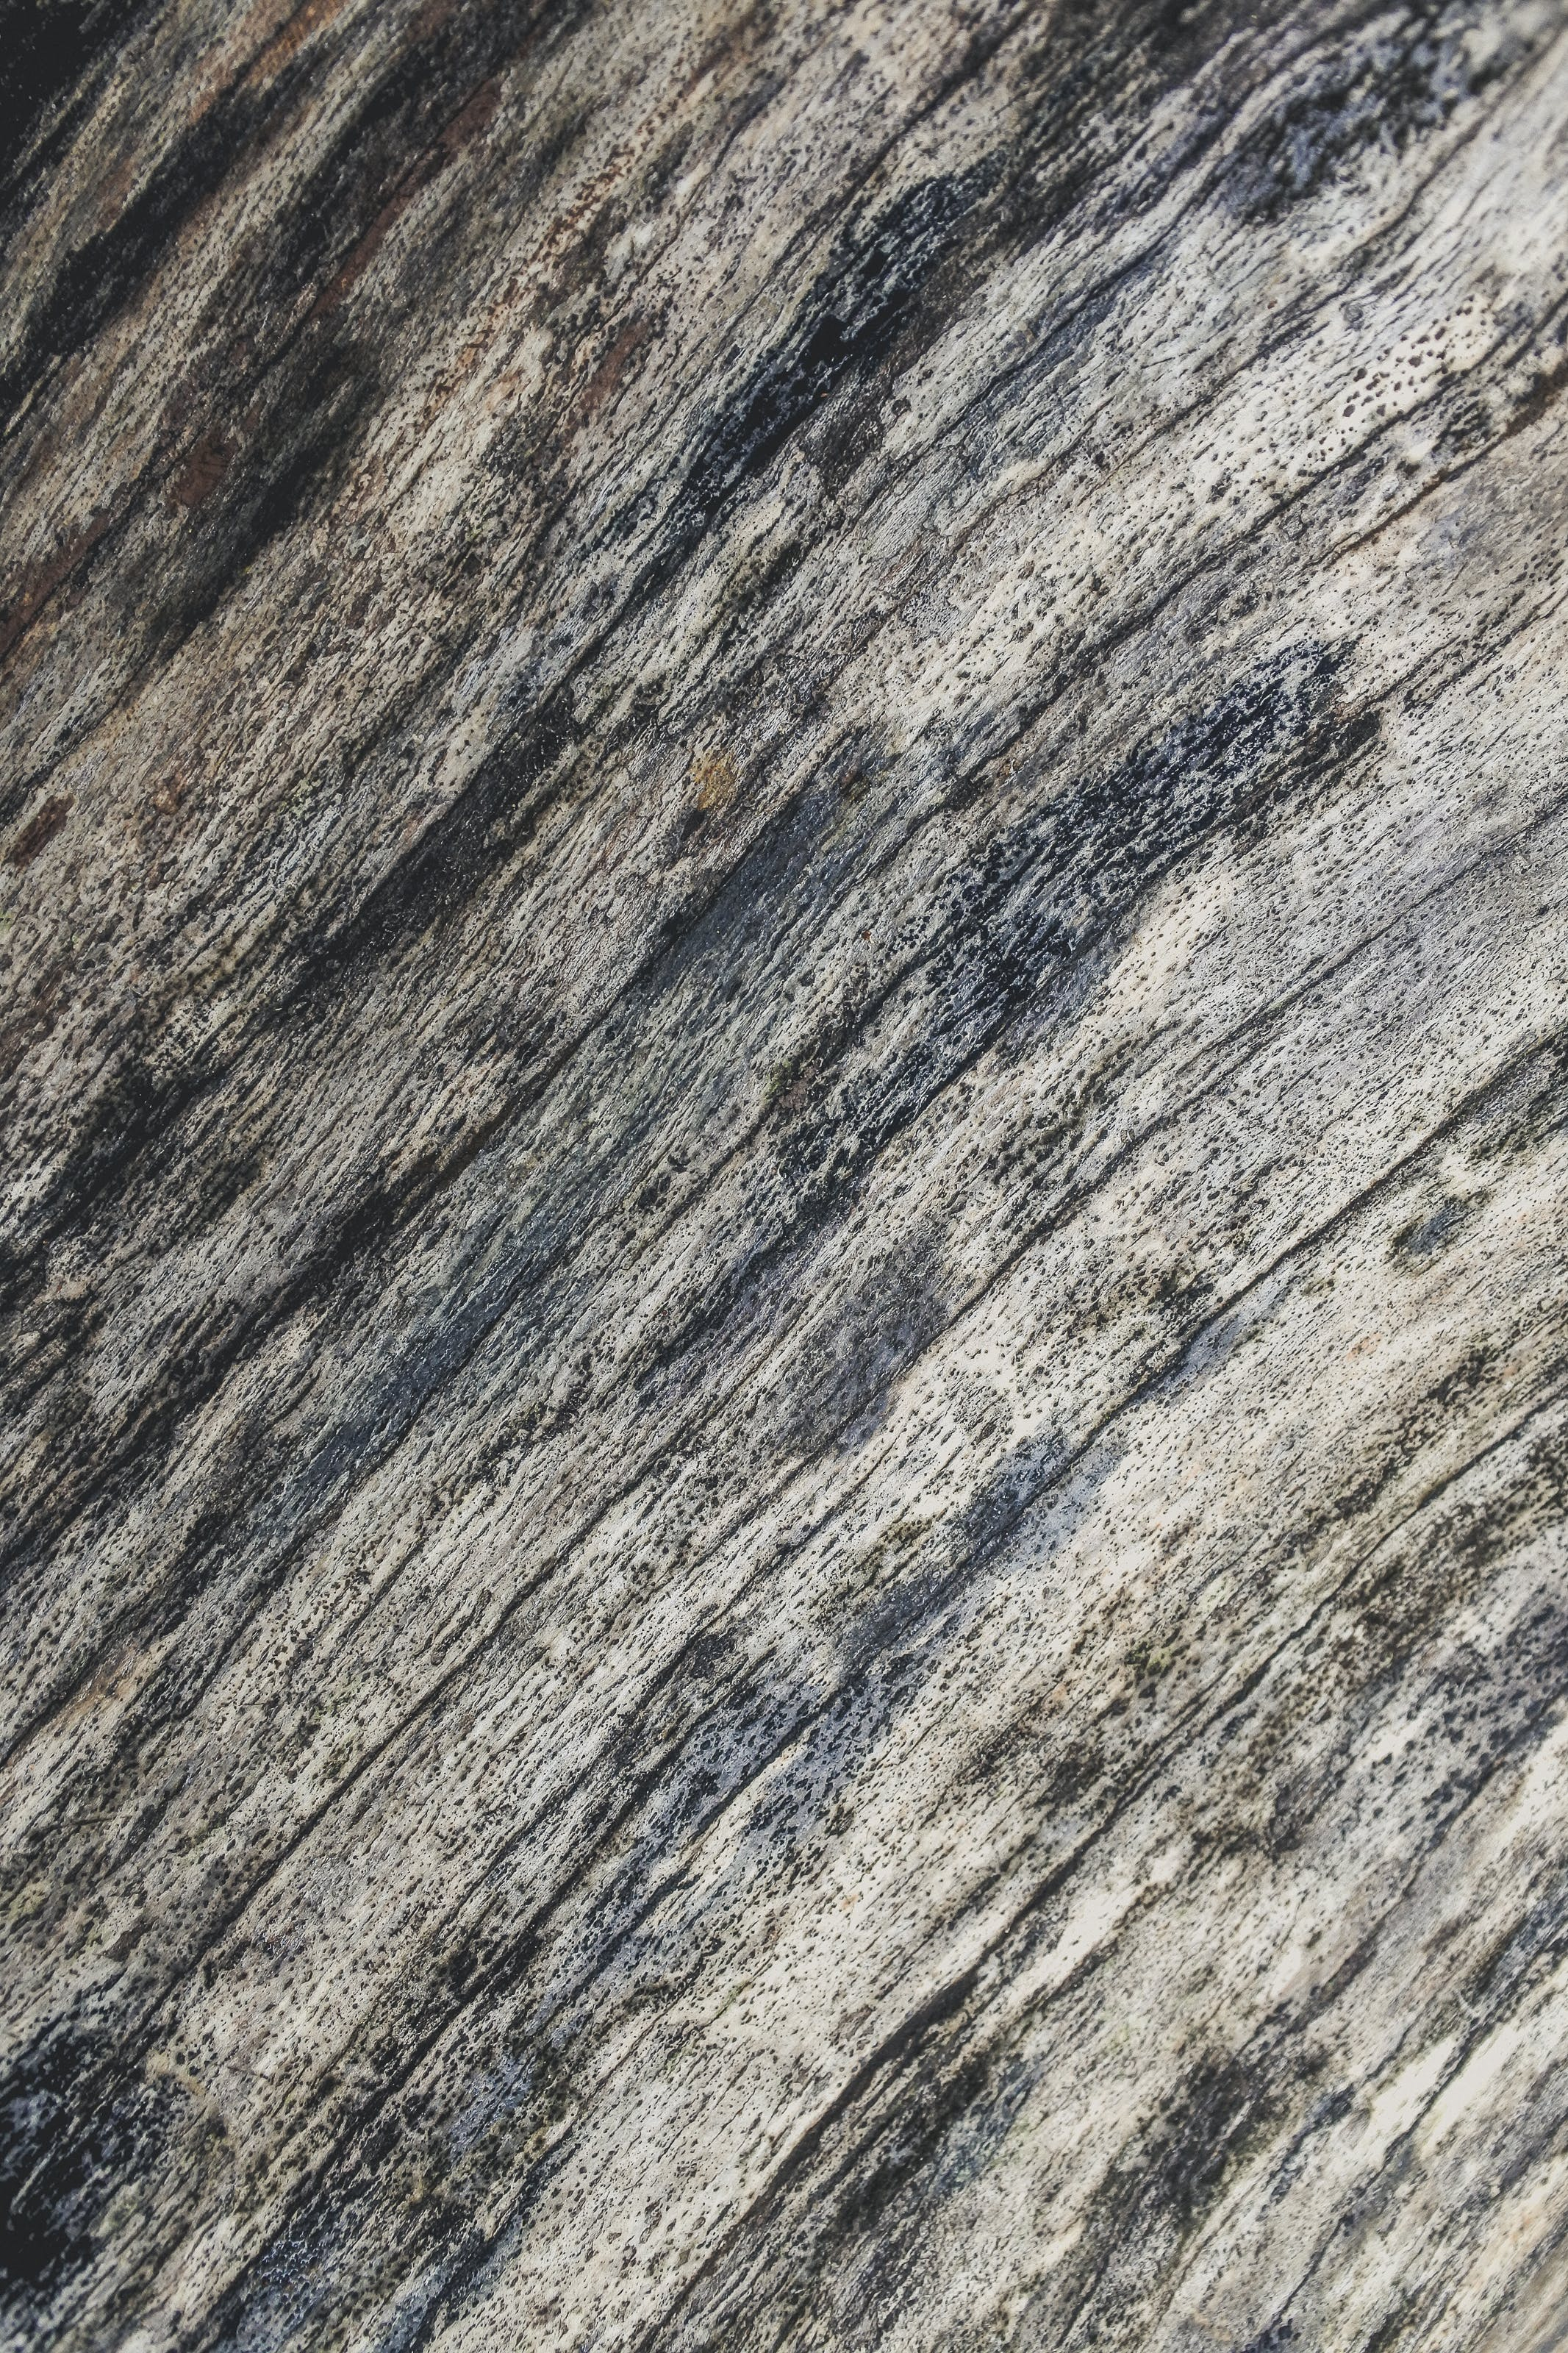 of abstract, alpine, background, bark